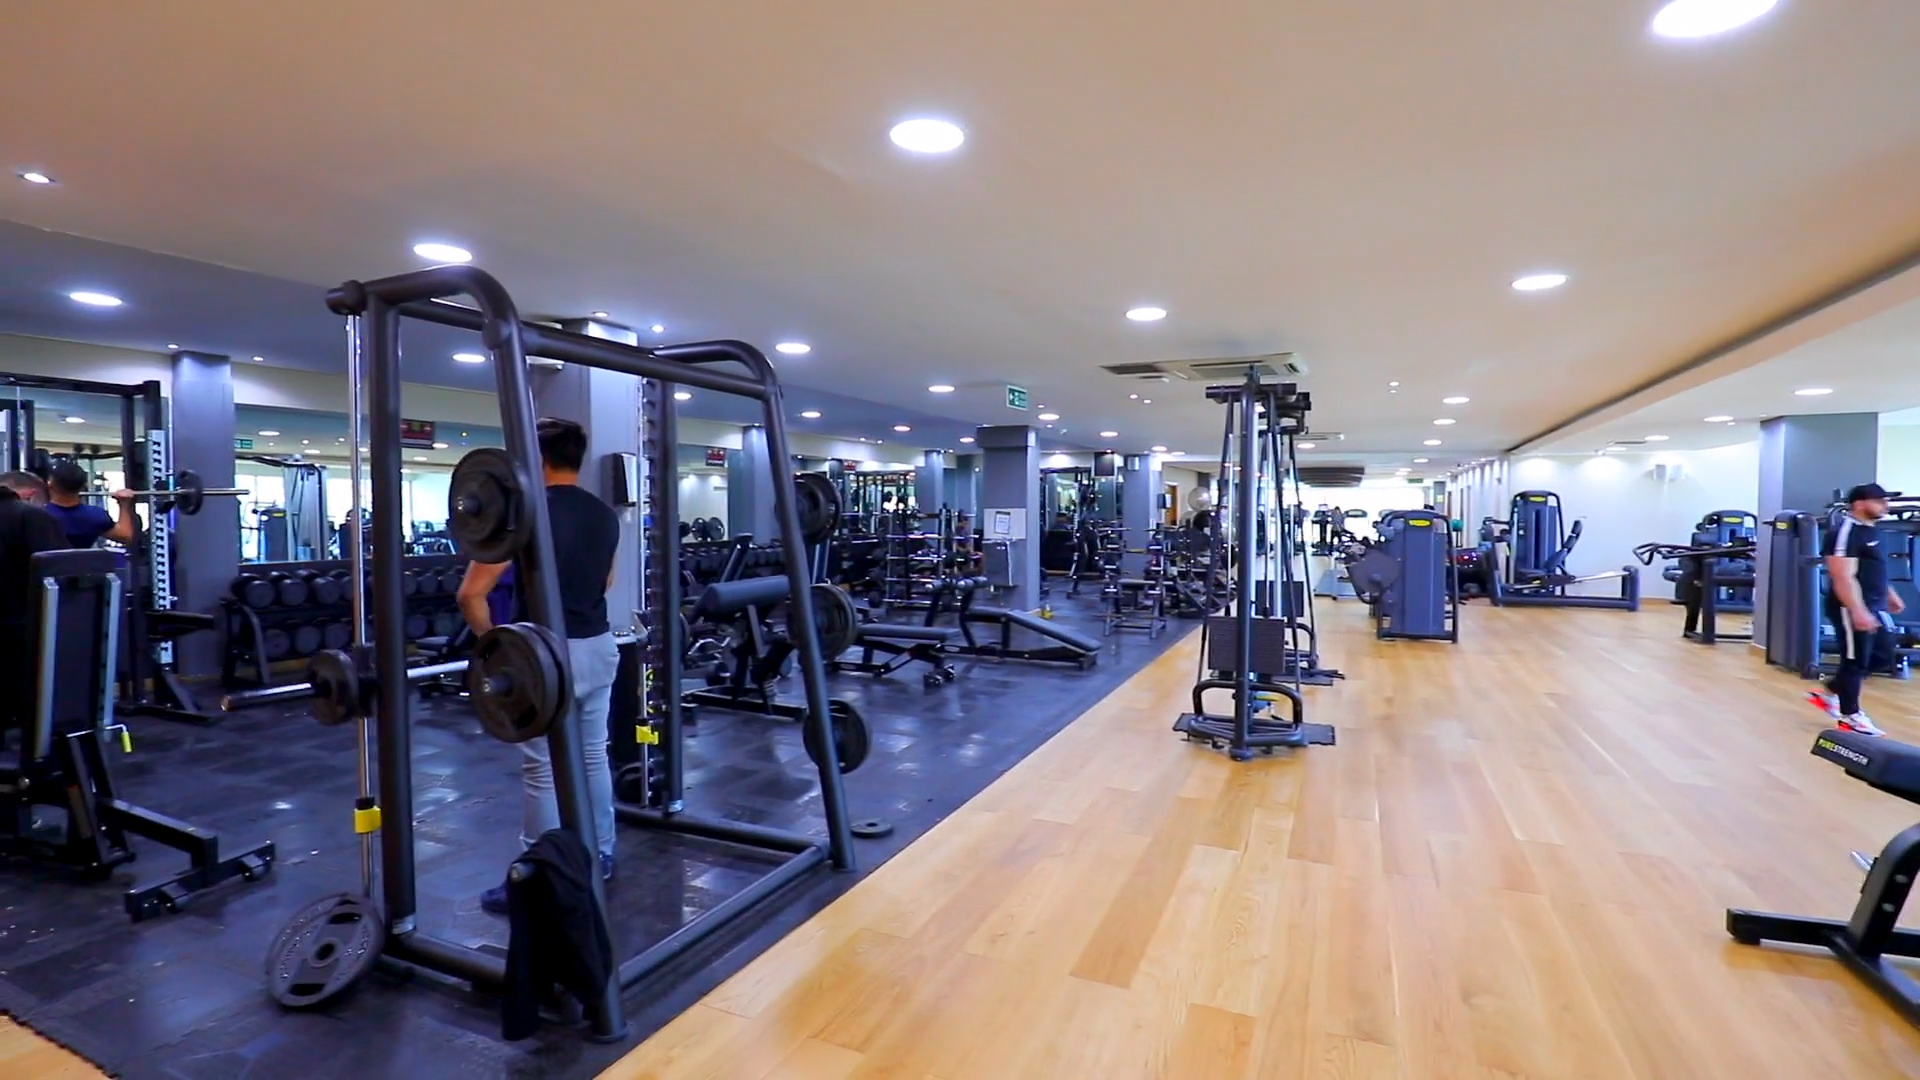 Golds Gym Continental Hotel